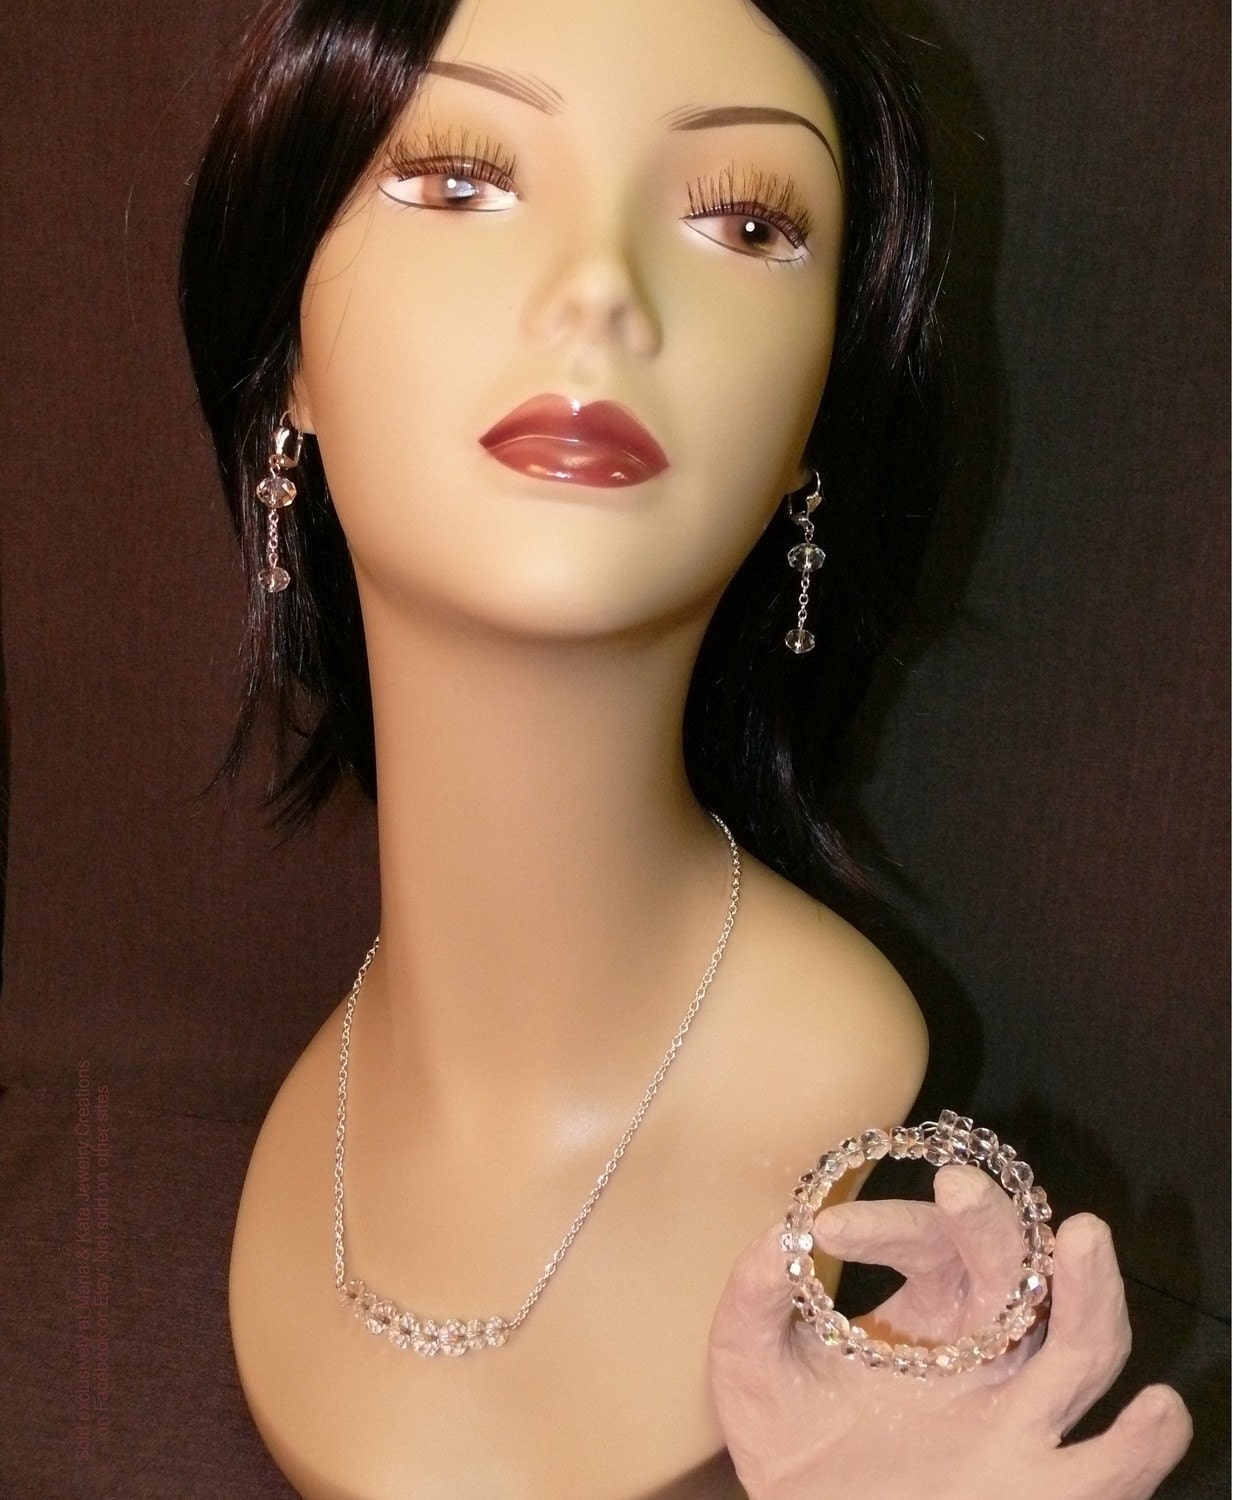 Lola's Glimmering Eyes Collection- Crystal Rondelles Earrings Necklace and Bracelet Set